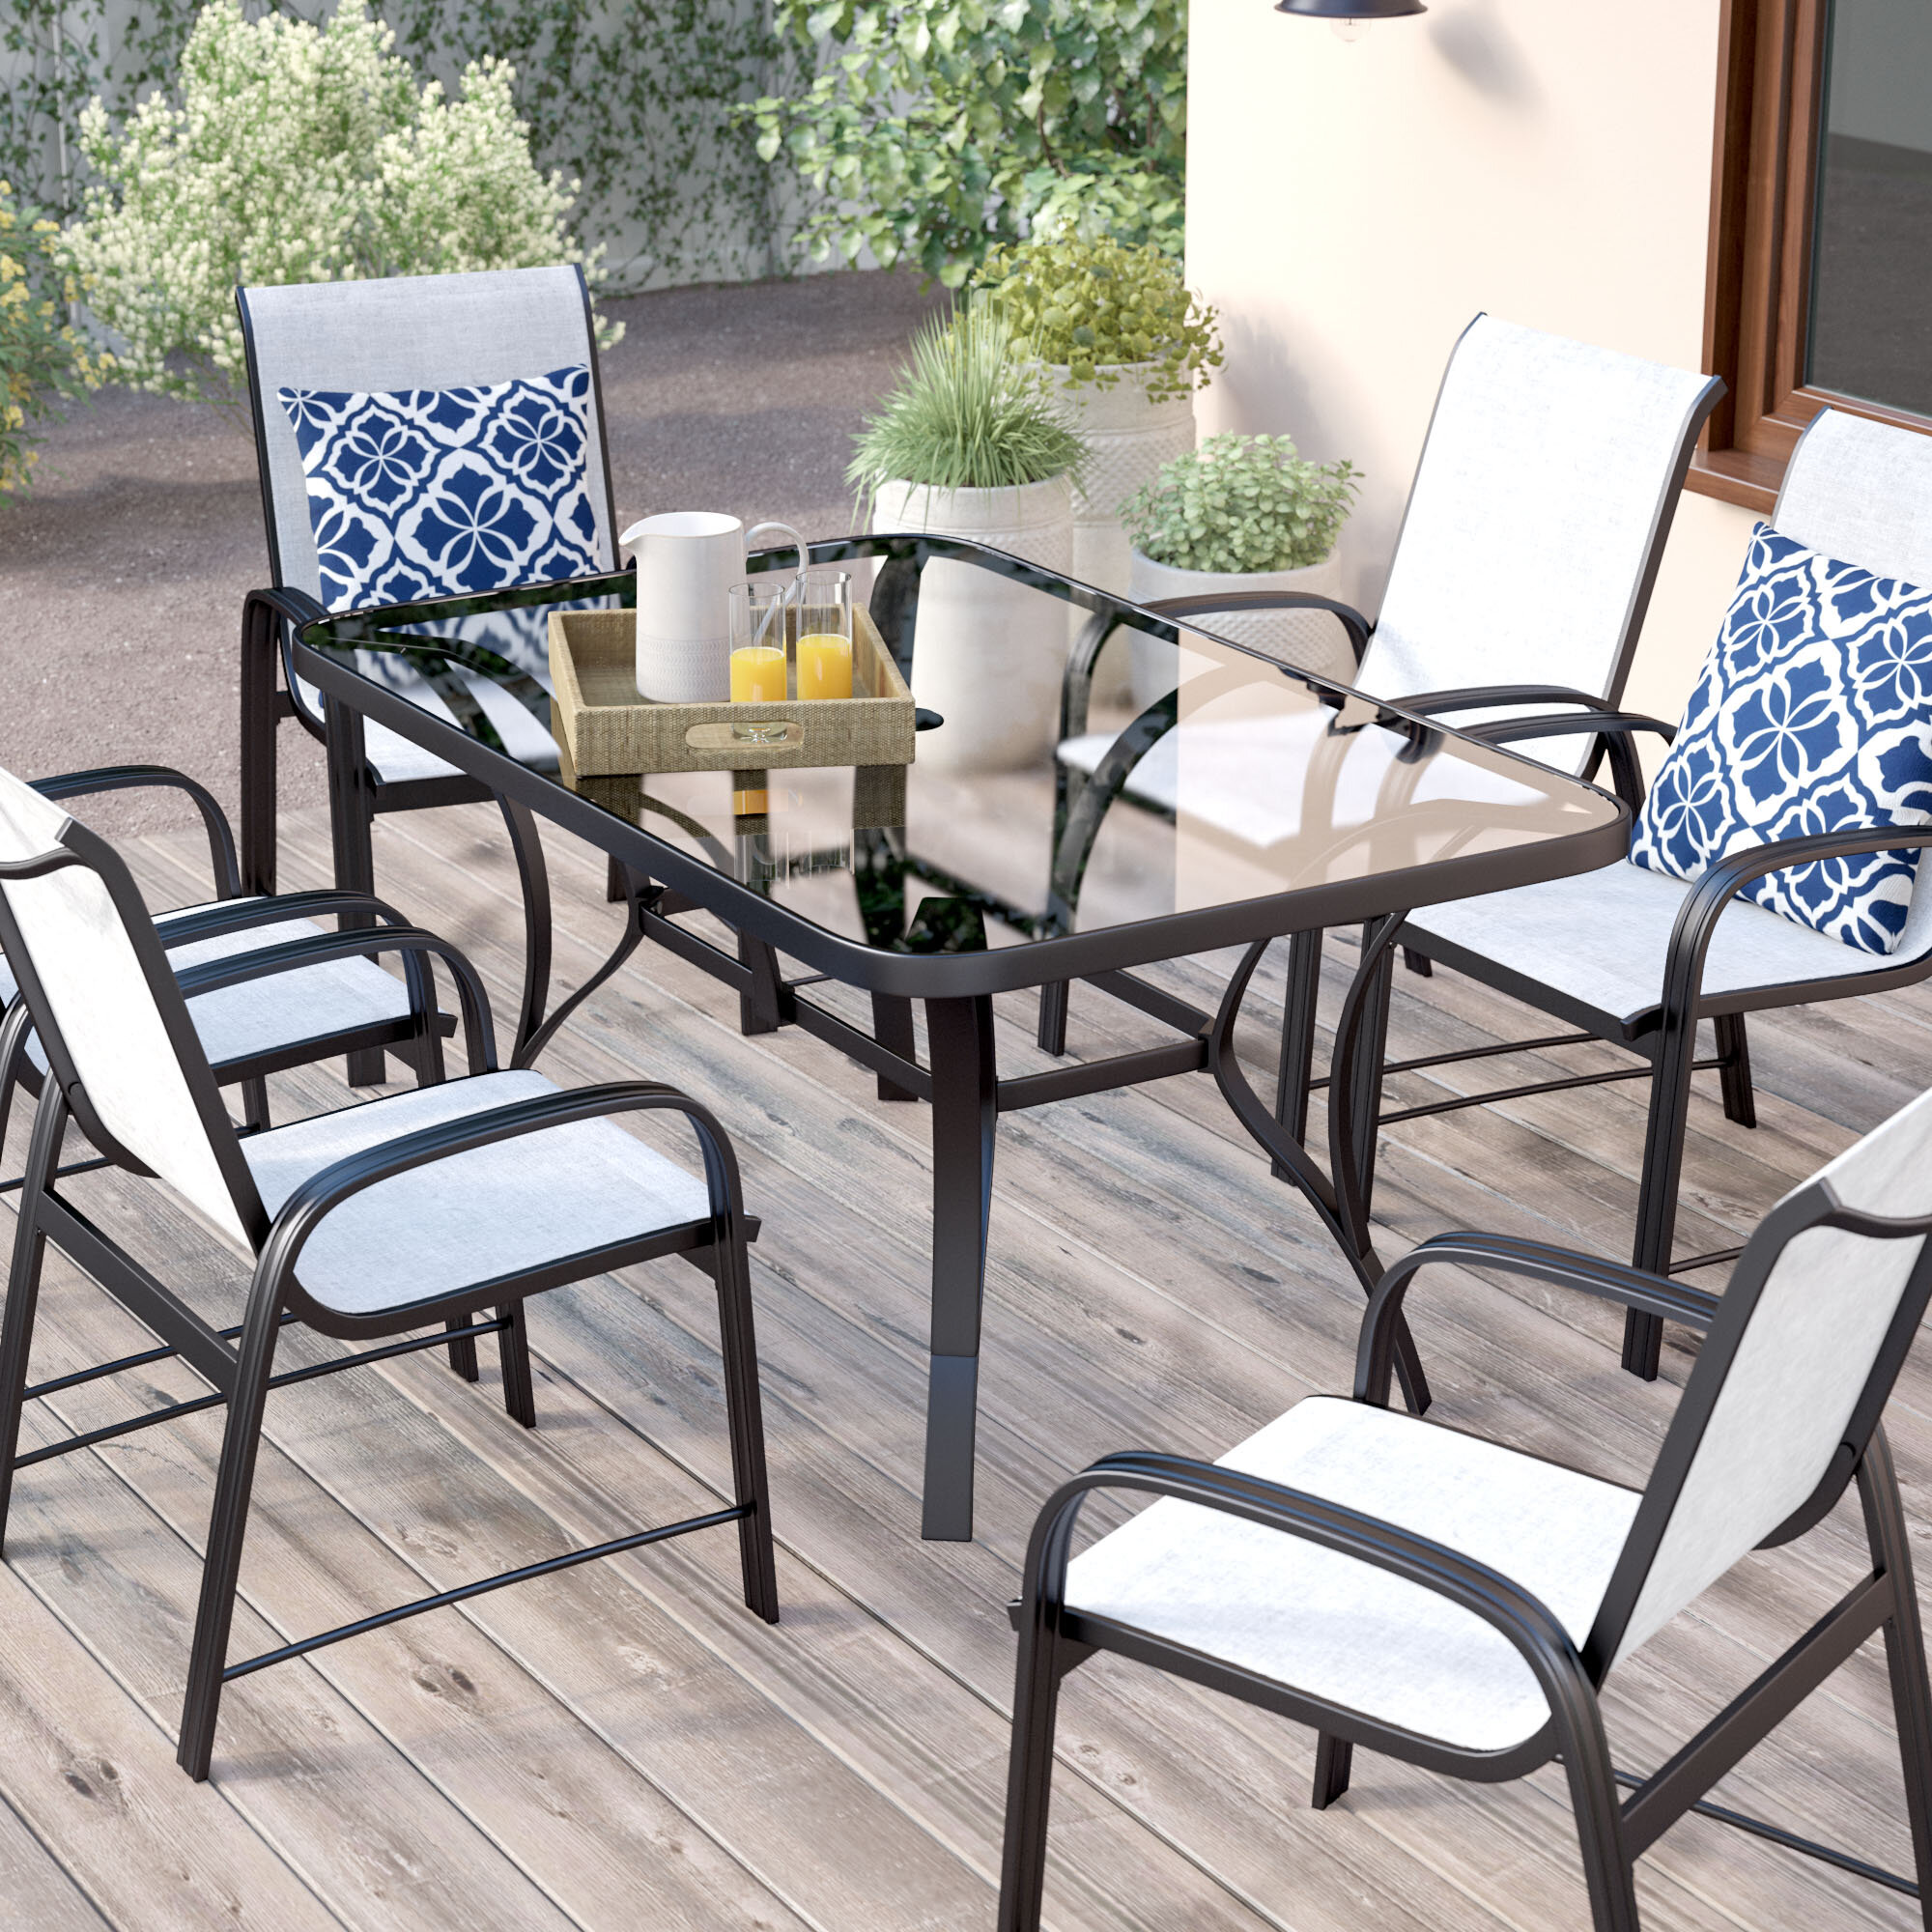 wicker suncrown patio sets outdoor decor best dining set beachfront